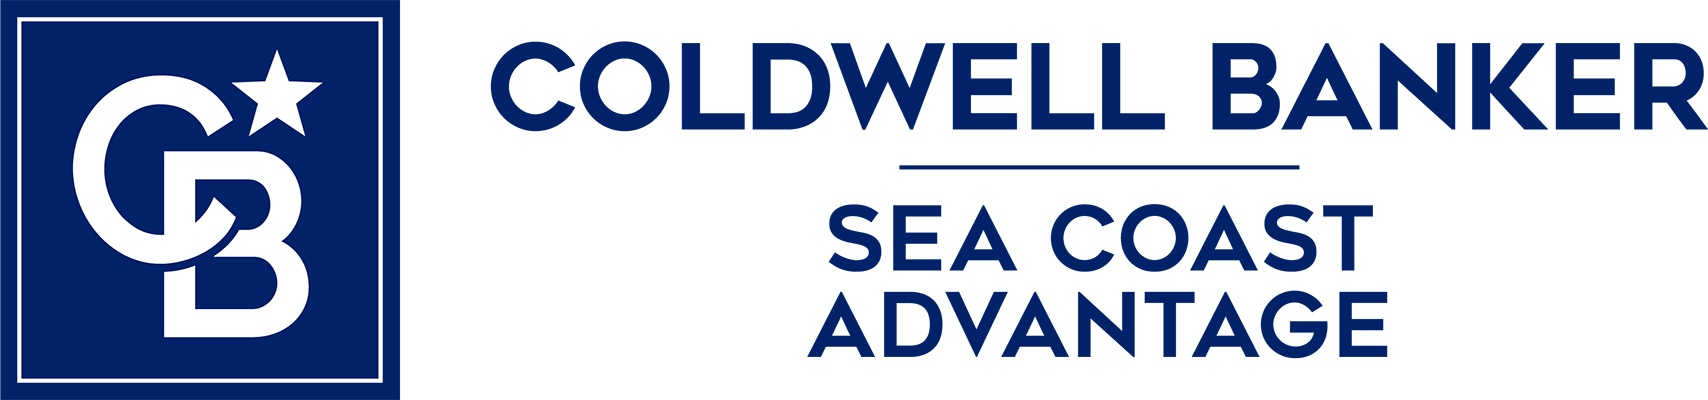 Jason Rhodes - Coldwell Banker Sea Coast Advantage Realty